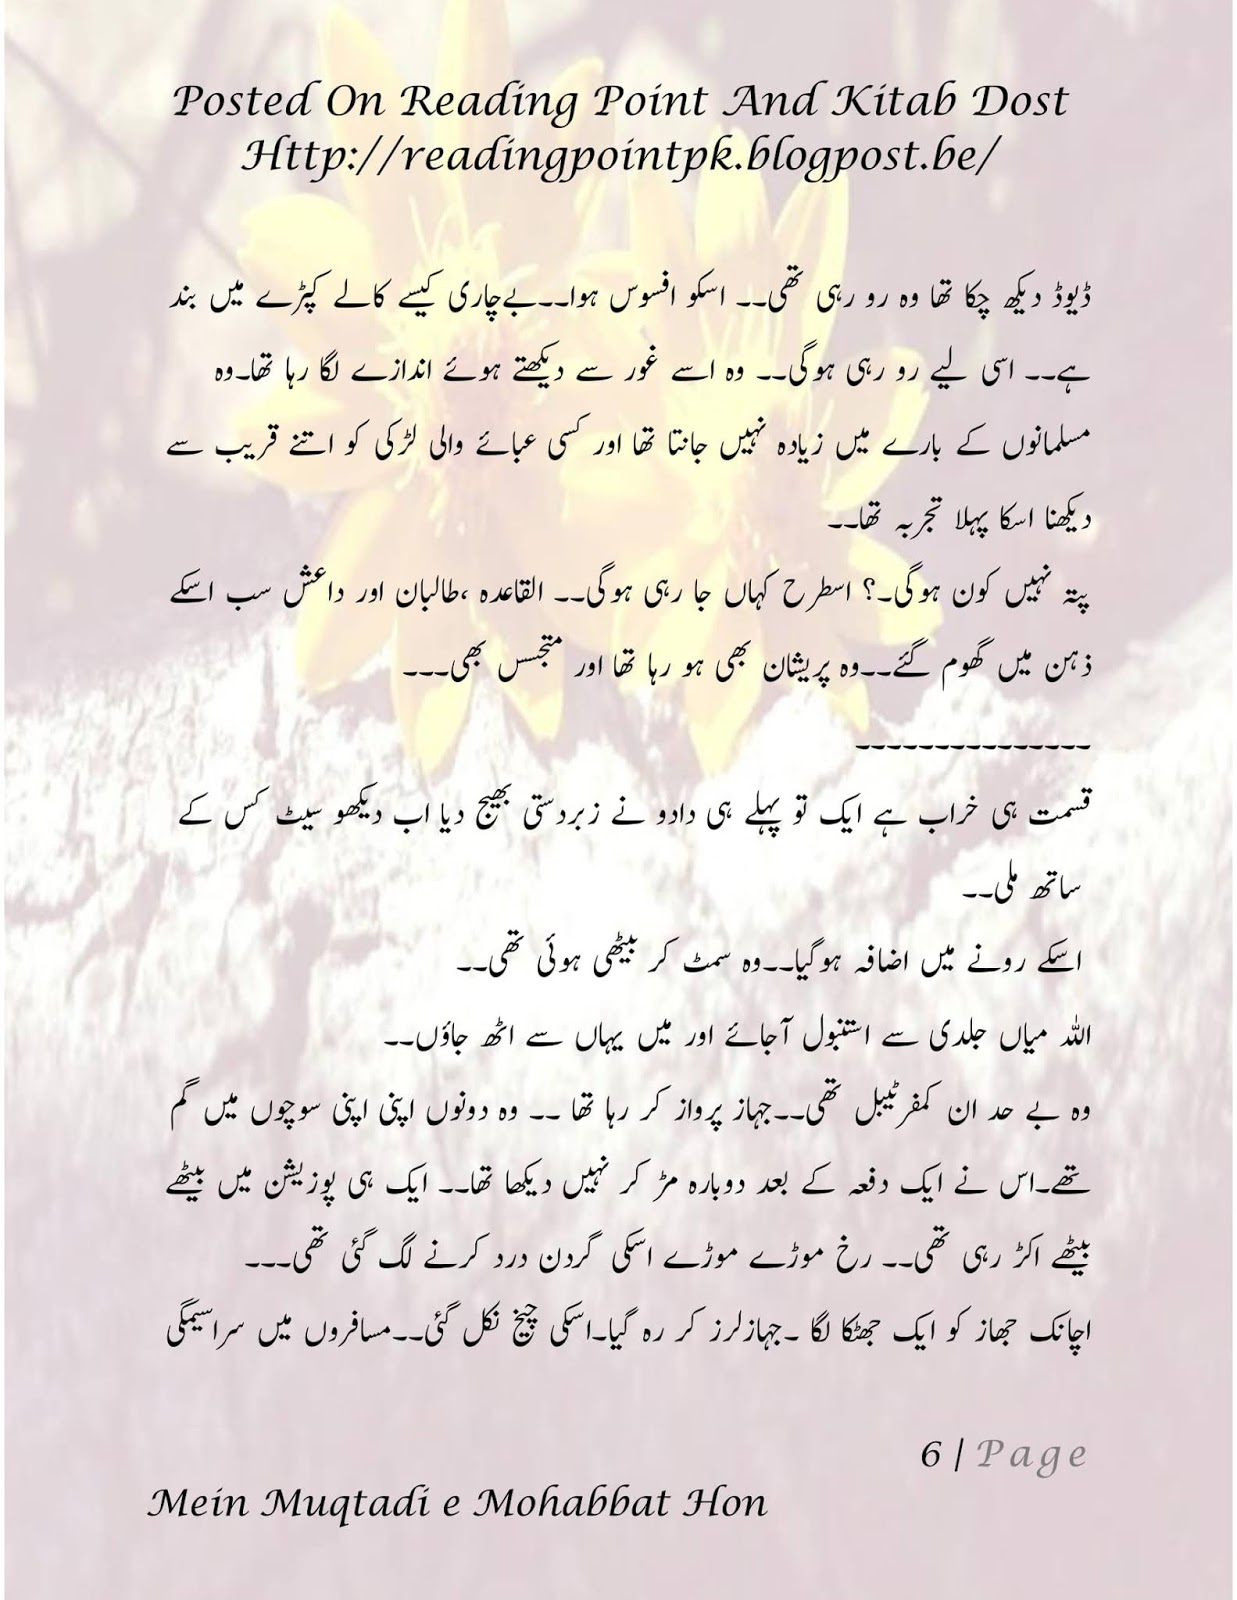 Main Muqtadi E Mohabbat Hon By Lubaba Hafeez Reverted Hero Novel